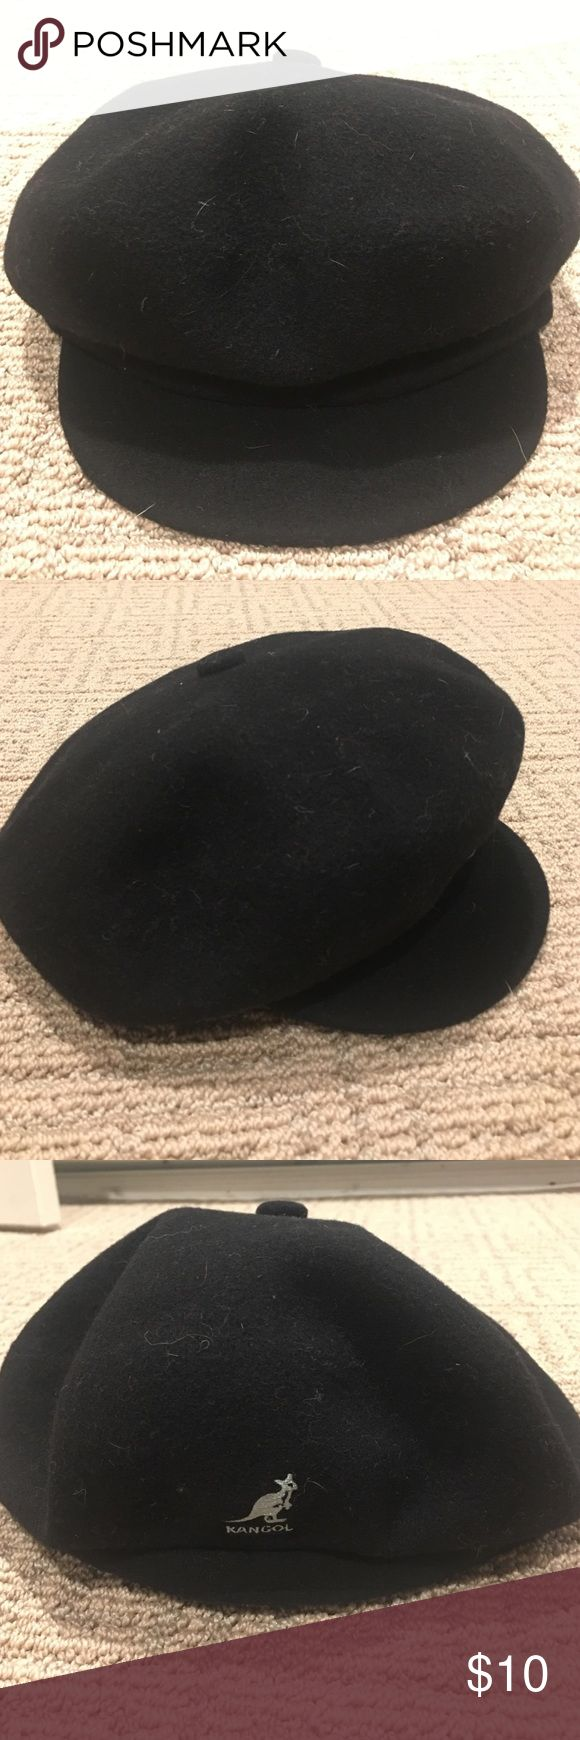 "Kangol ""newsboy"" black wool cap This black wool Kangol cap can be worn with the brim facing forward or backwards to switch up your look!! Unlined but has an interior band for comfort. Kangol Accessories Hats"